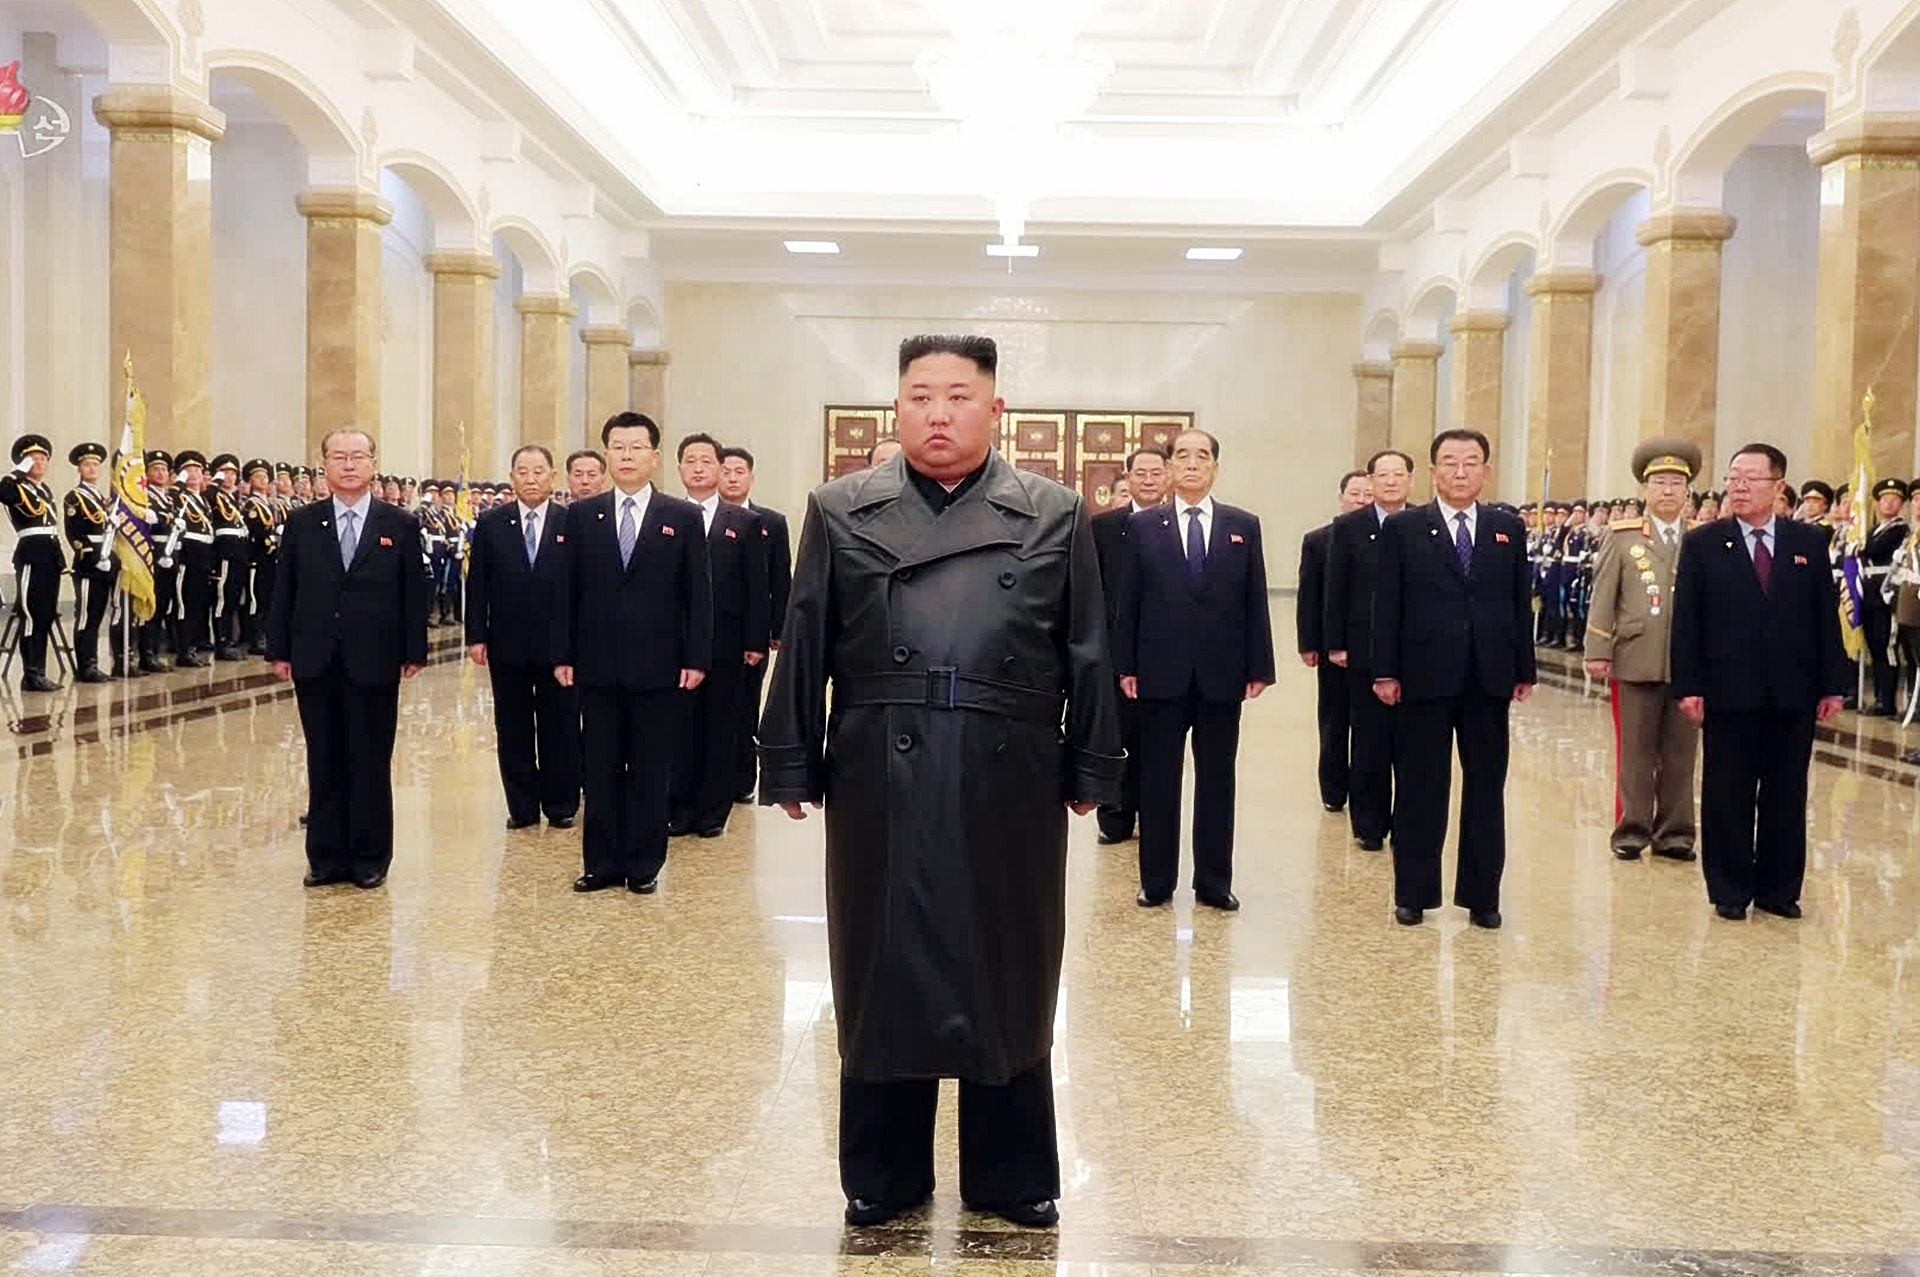 Ep.48 Will troubled N. Korea engage with S. Korea?